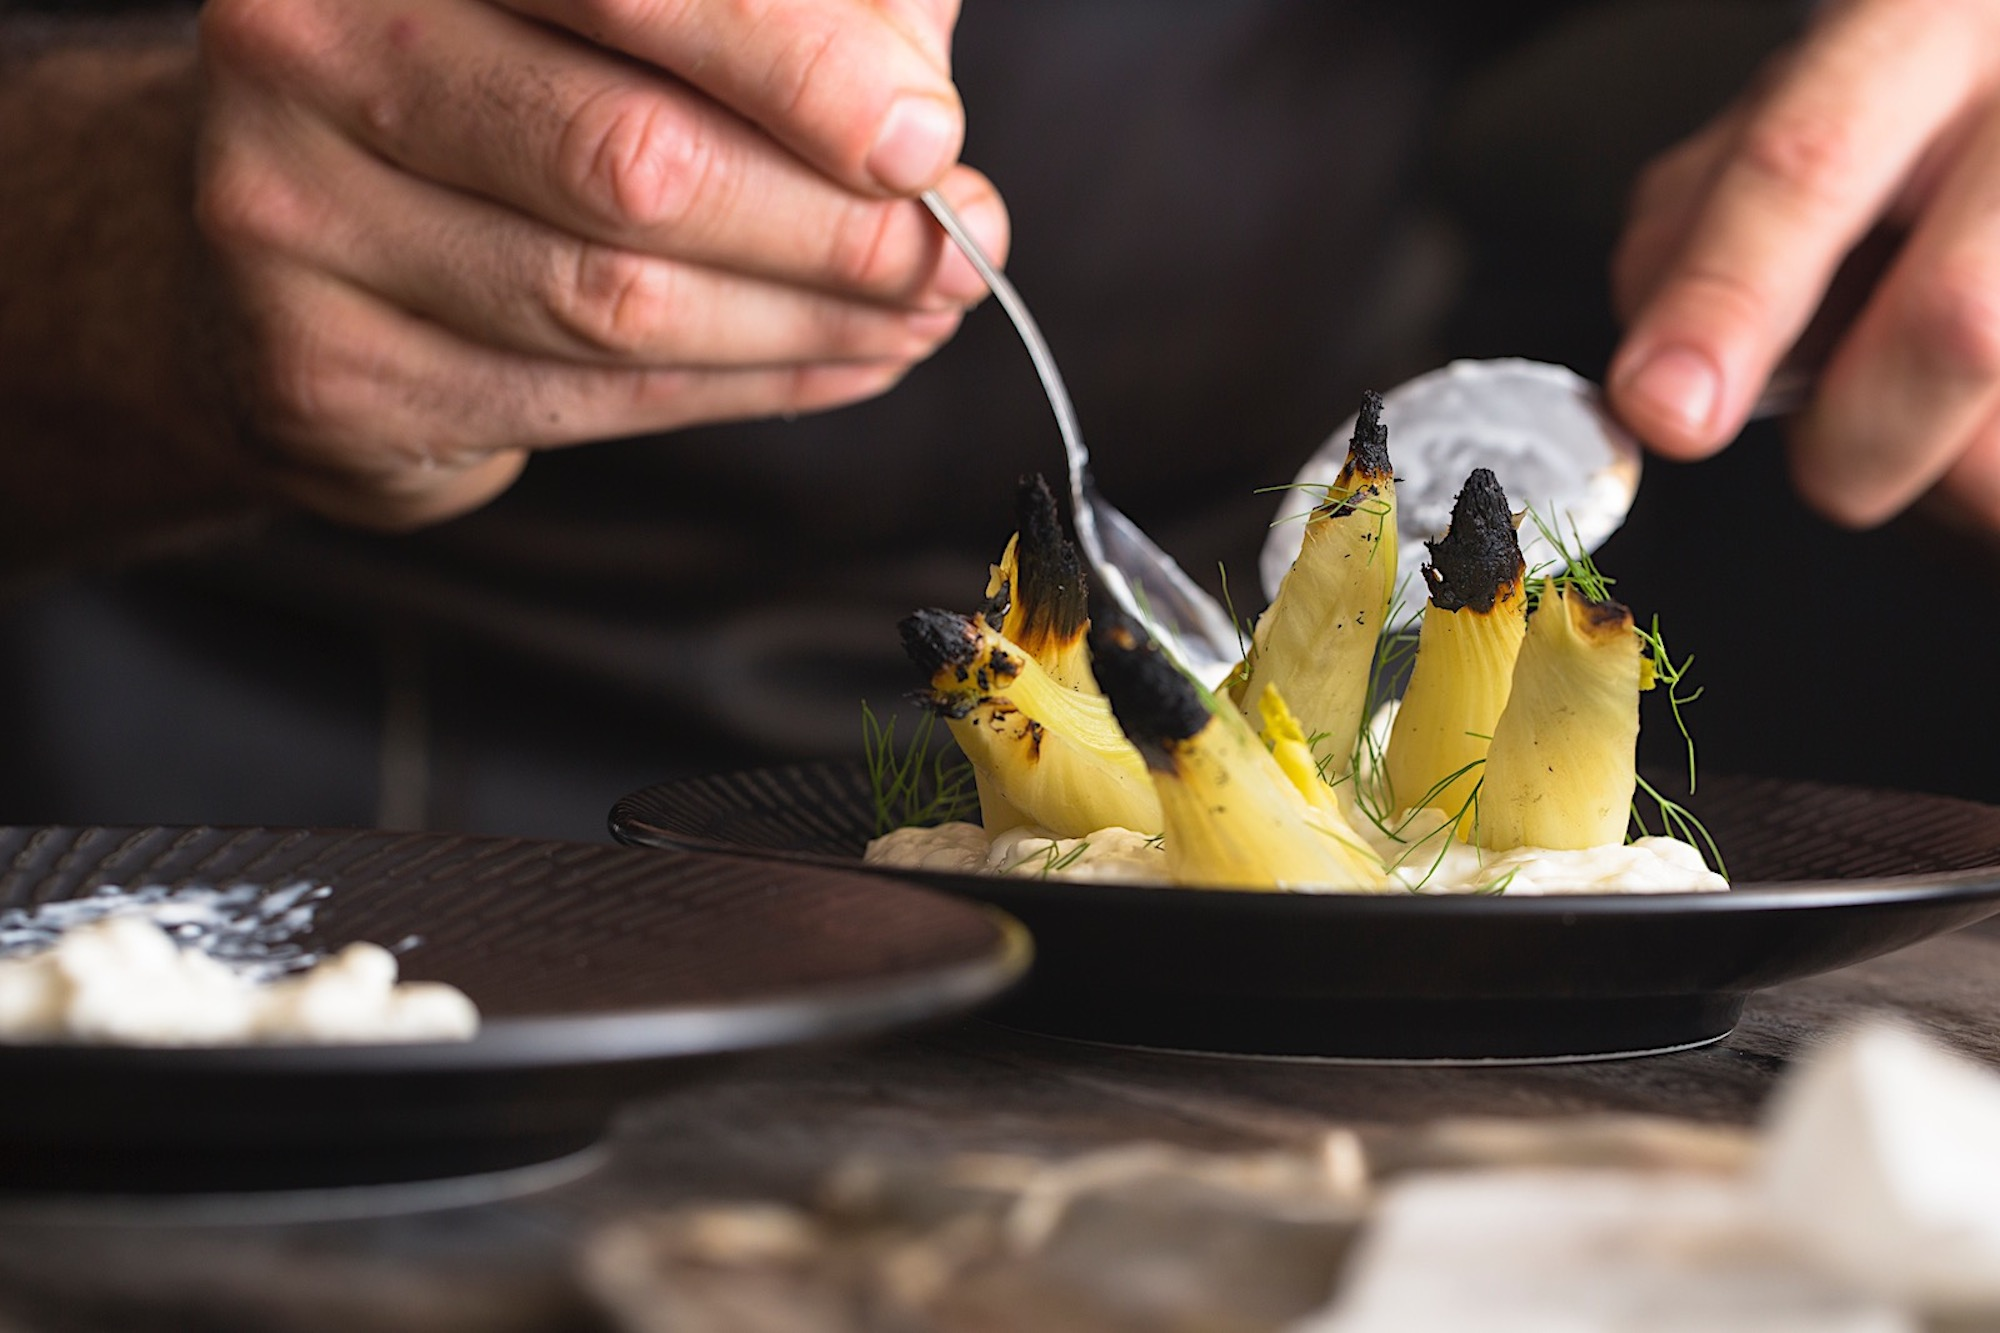 The World's 50 Best Restaurants is launching the Recovery Summit to revitalise the restaurant sphere